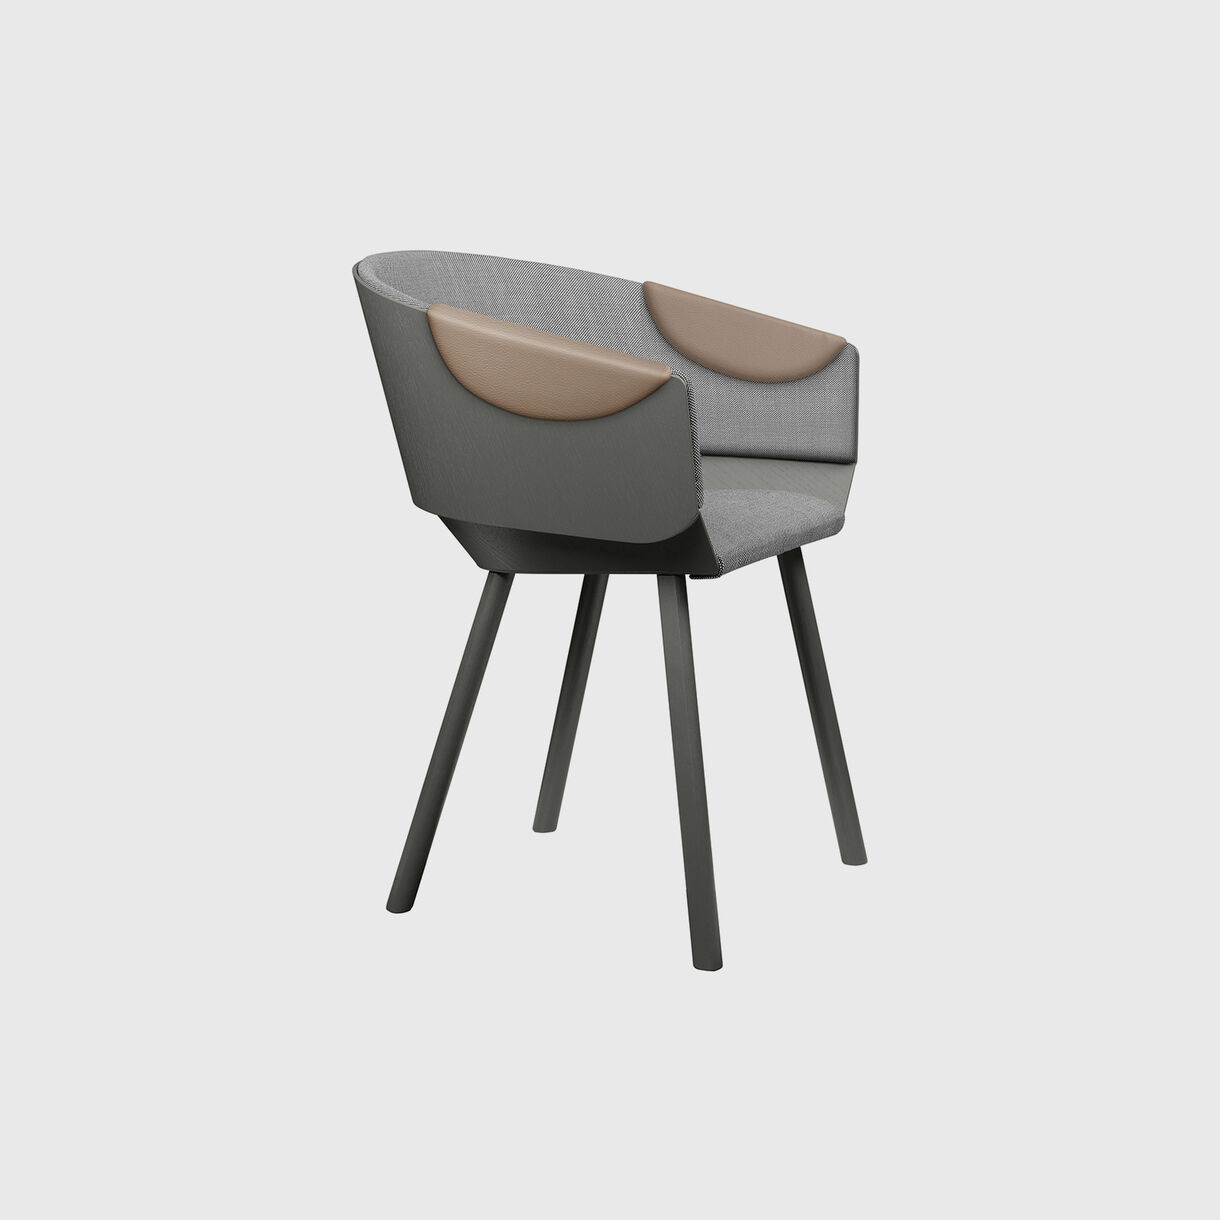 Houdini Armchair, Grey Upholstered